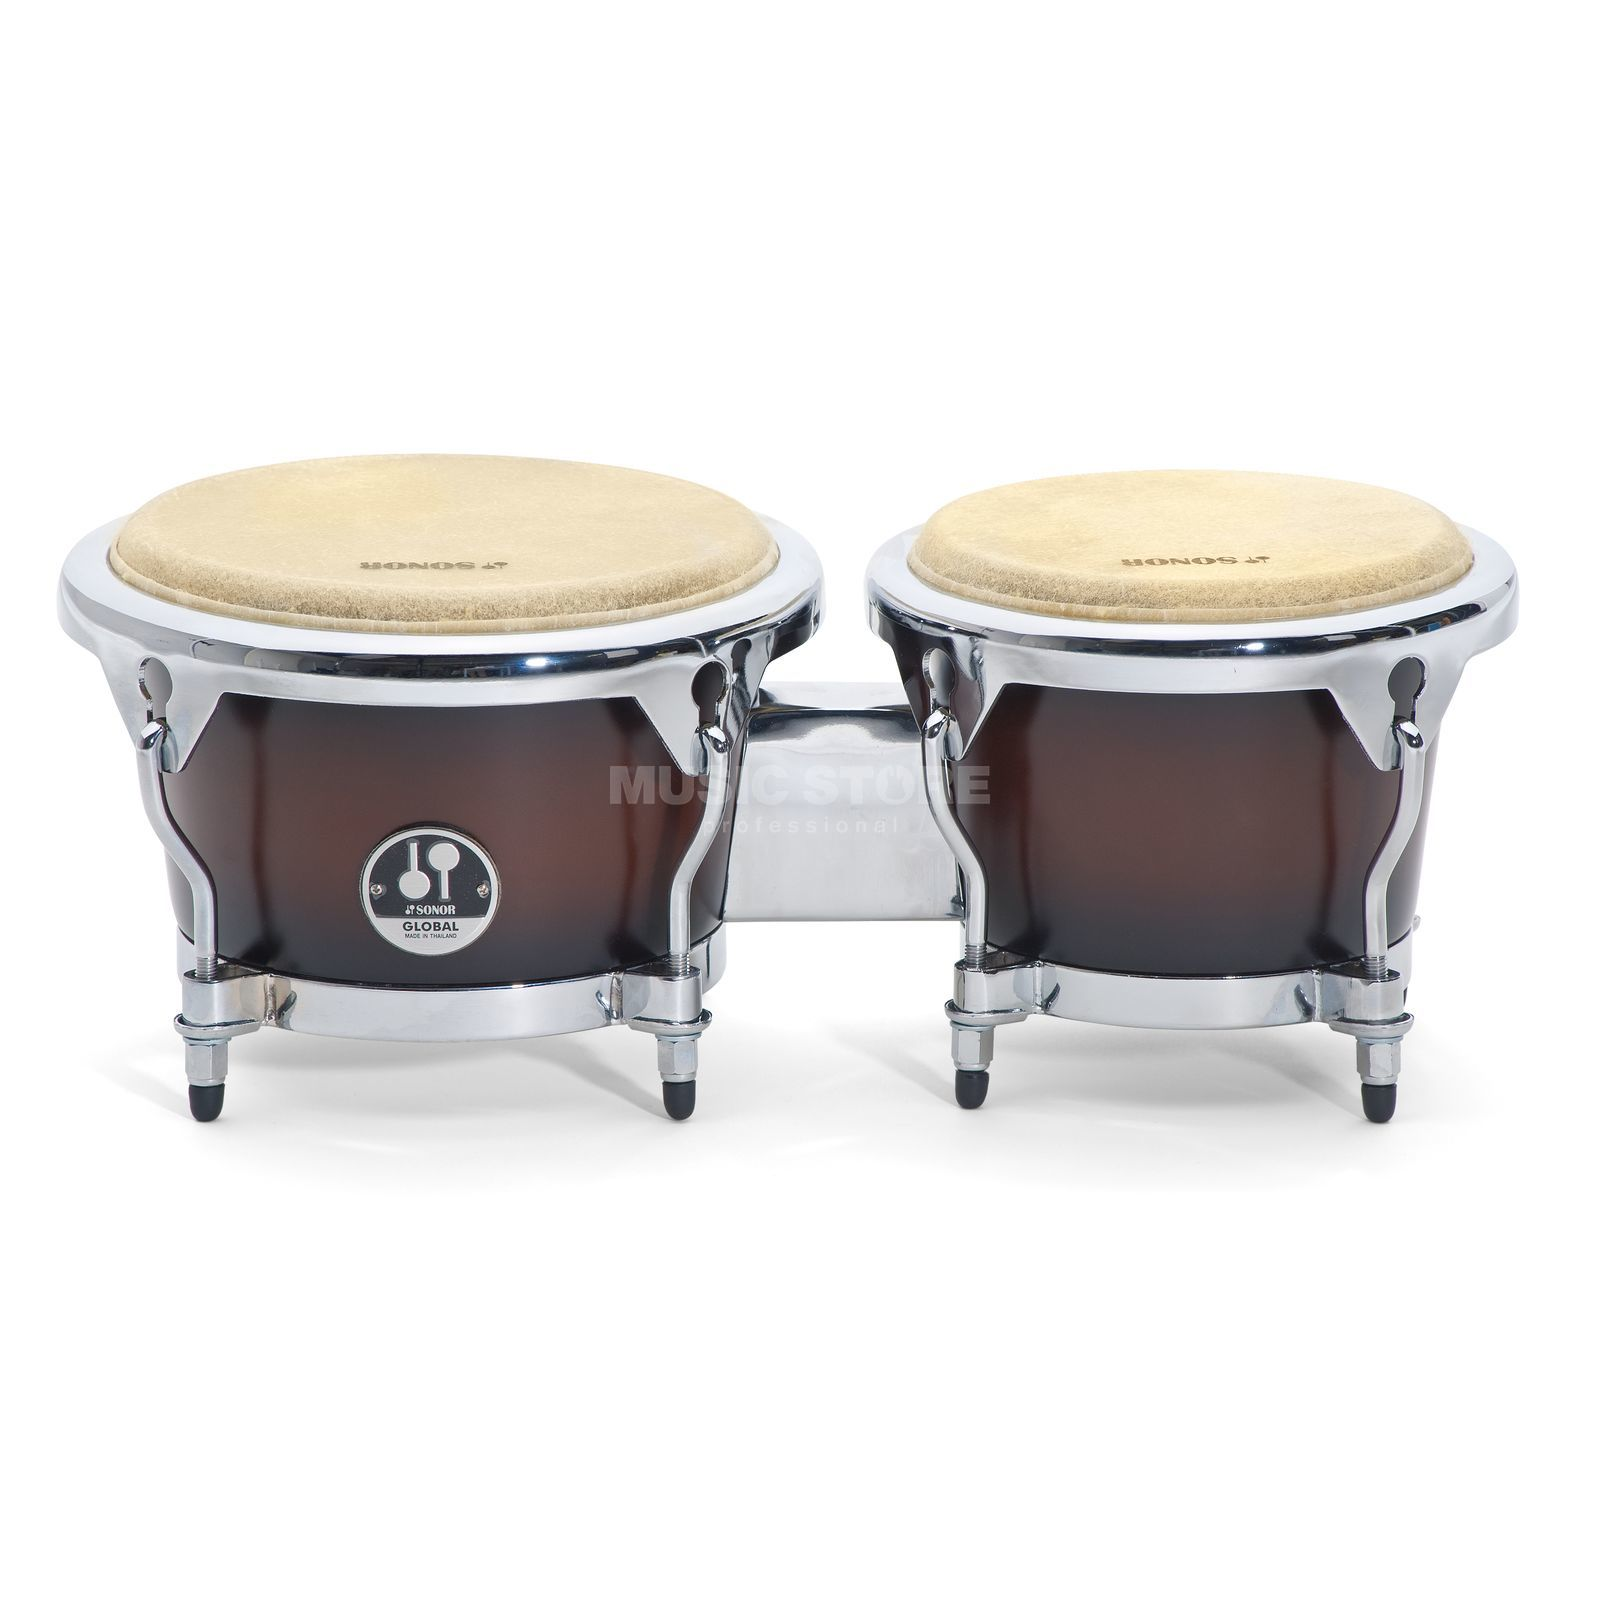 "Sonor Global Bongos GBF 7850 BF, 7""+8 1/2"", Brown Fade Zdjęcie produktu"